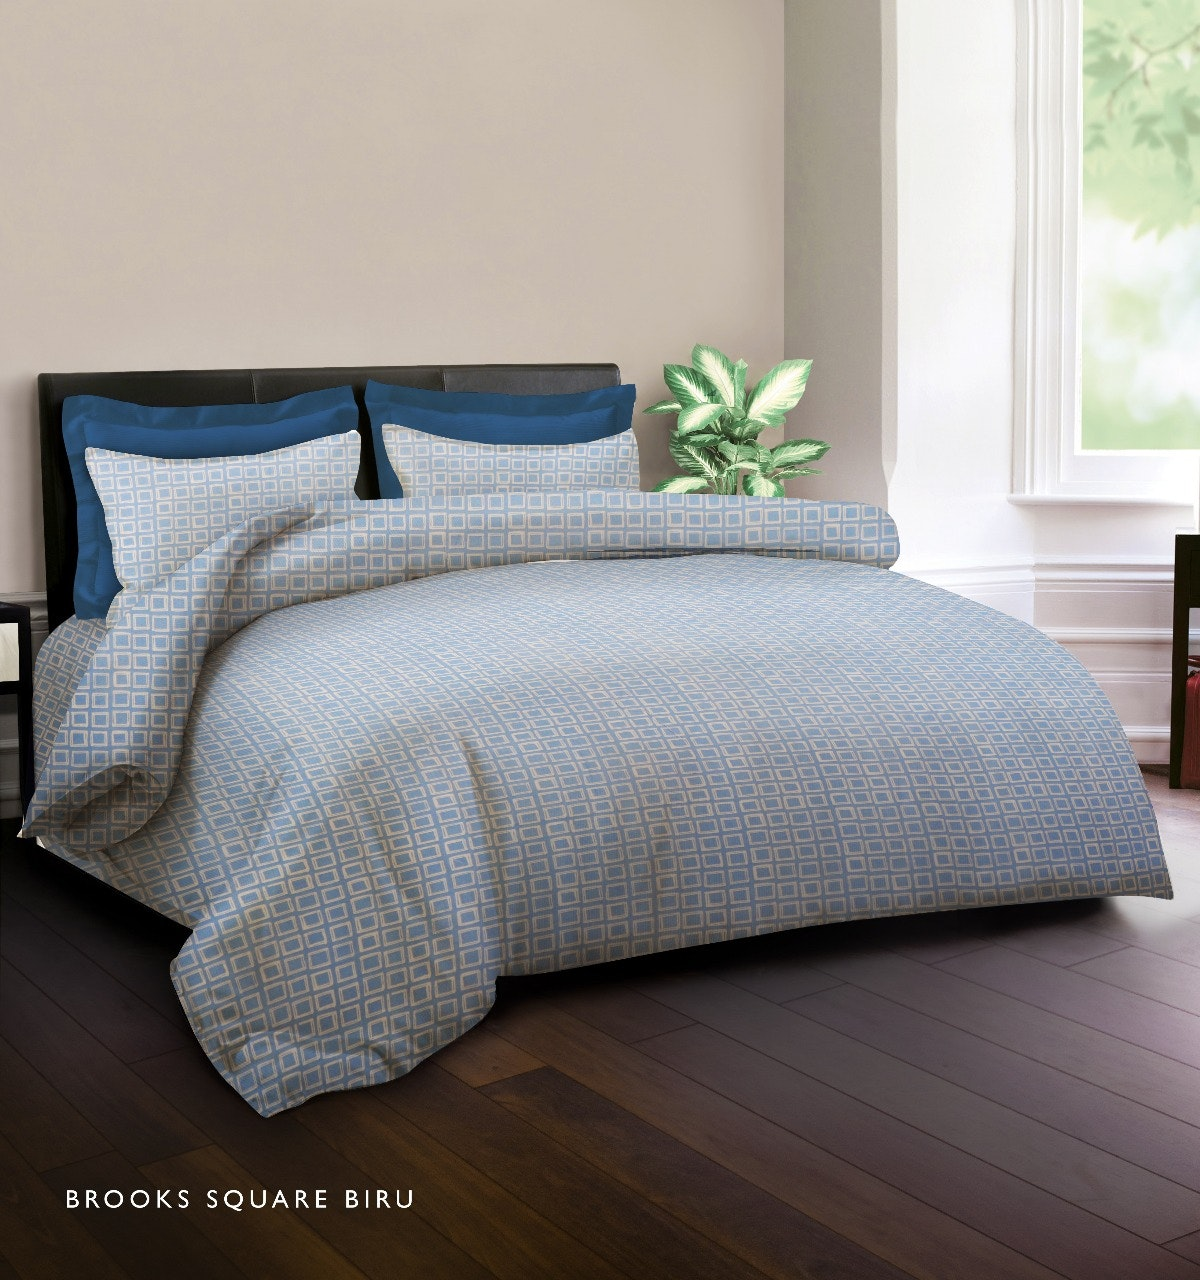 King Rabbit Set Bed Cover & Sprei Sarung Bantal Queen Motif Brooks Square - Biru Uk 160x200x40 cm